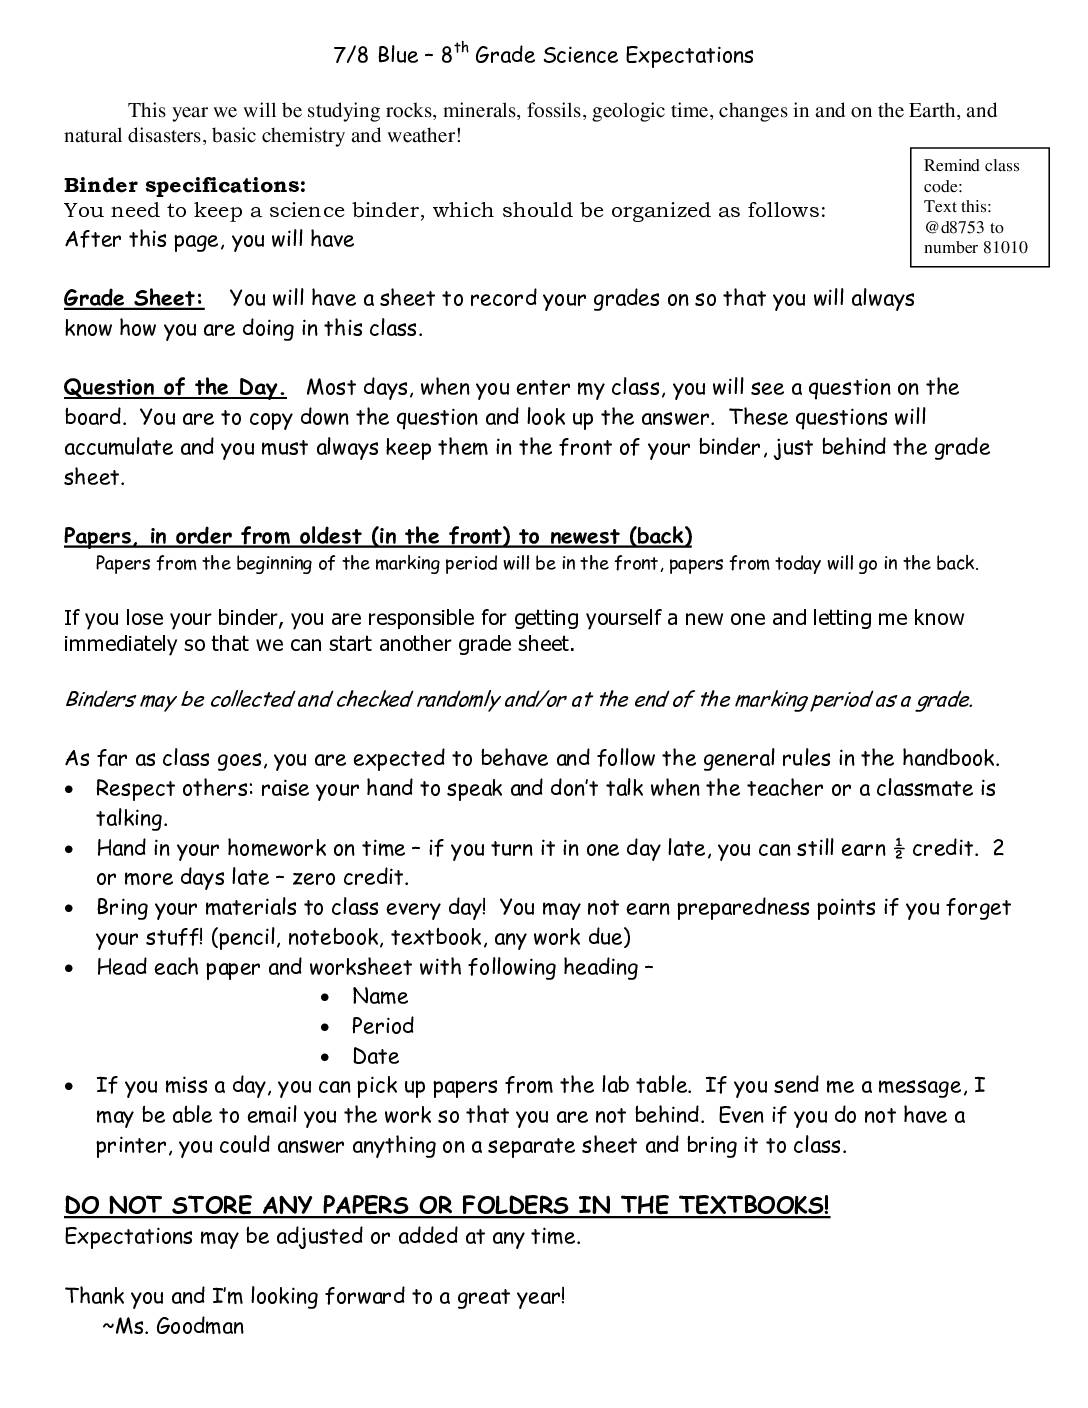 8th grade expectations First grade eighth grade m a t h e m a t i c s 8 v 1205 math number & operations algebra measurement content expectations are based on geometry.